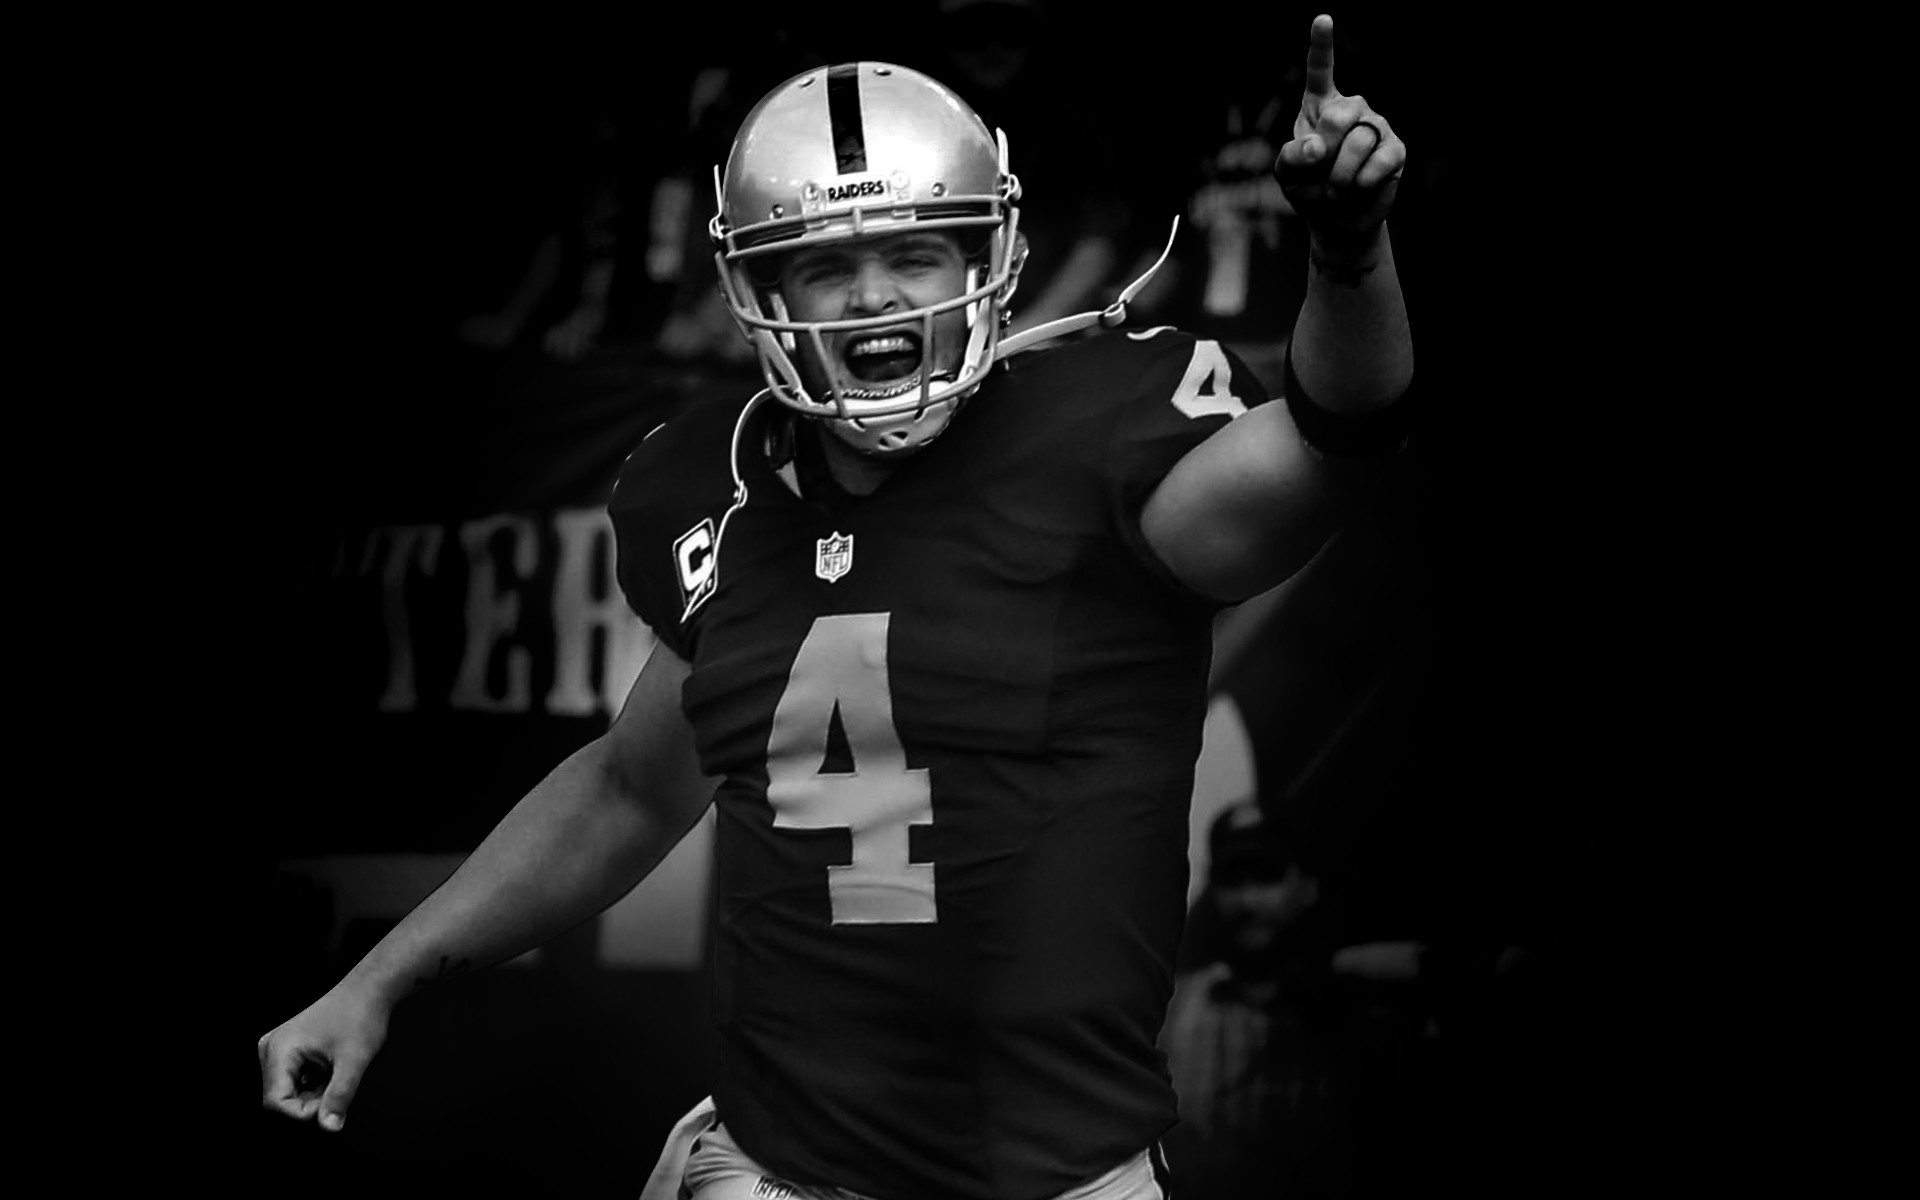 1920x1200 Oakland Raiders 50th anniversary in the year 2009.